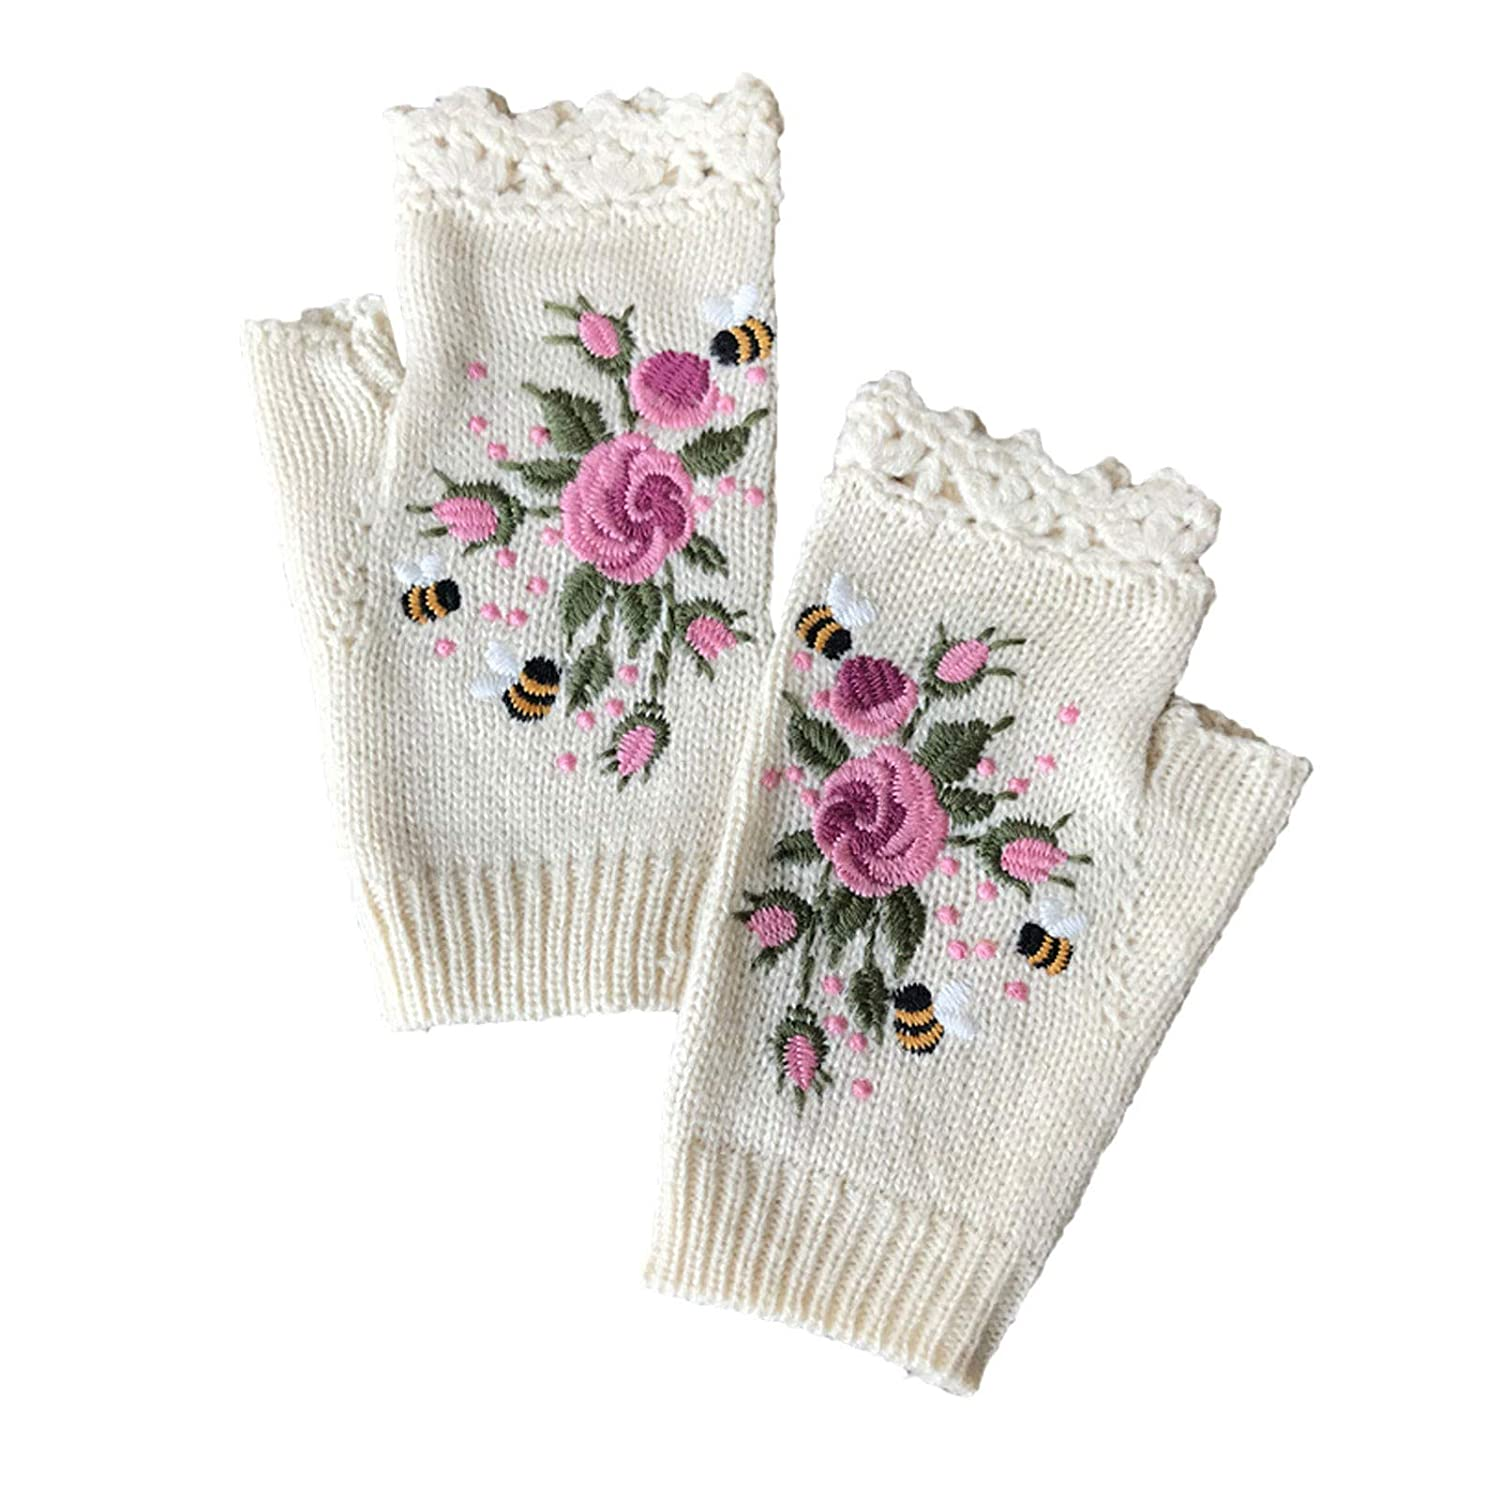 【USA In Stock】Hand Knit Alpaca Fingerless Embroidered Rose Flower Gloves Fleece Lined Winter Texting Driving Warm